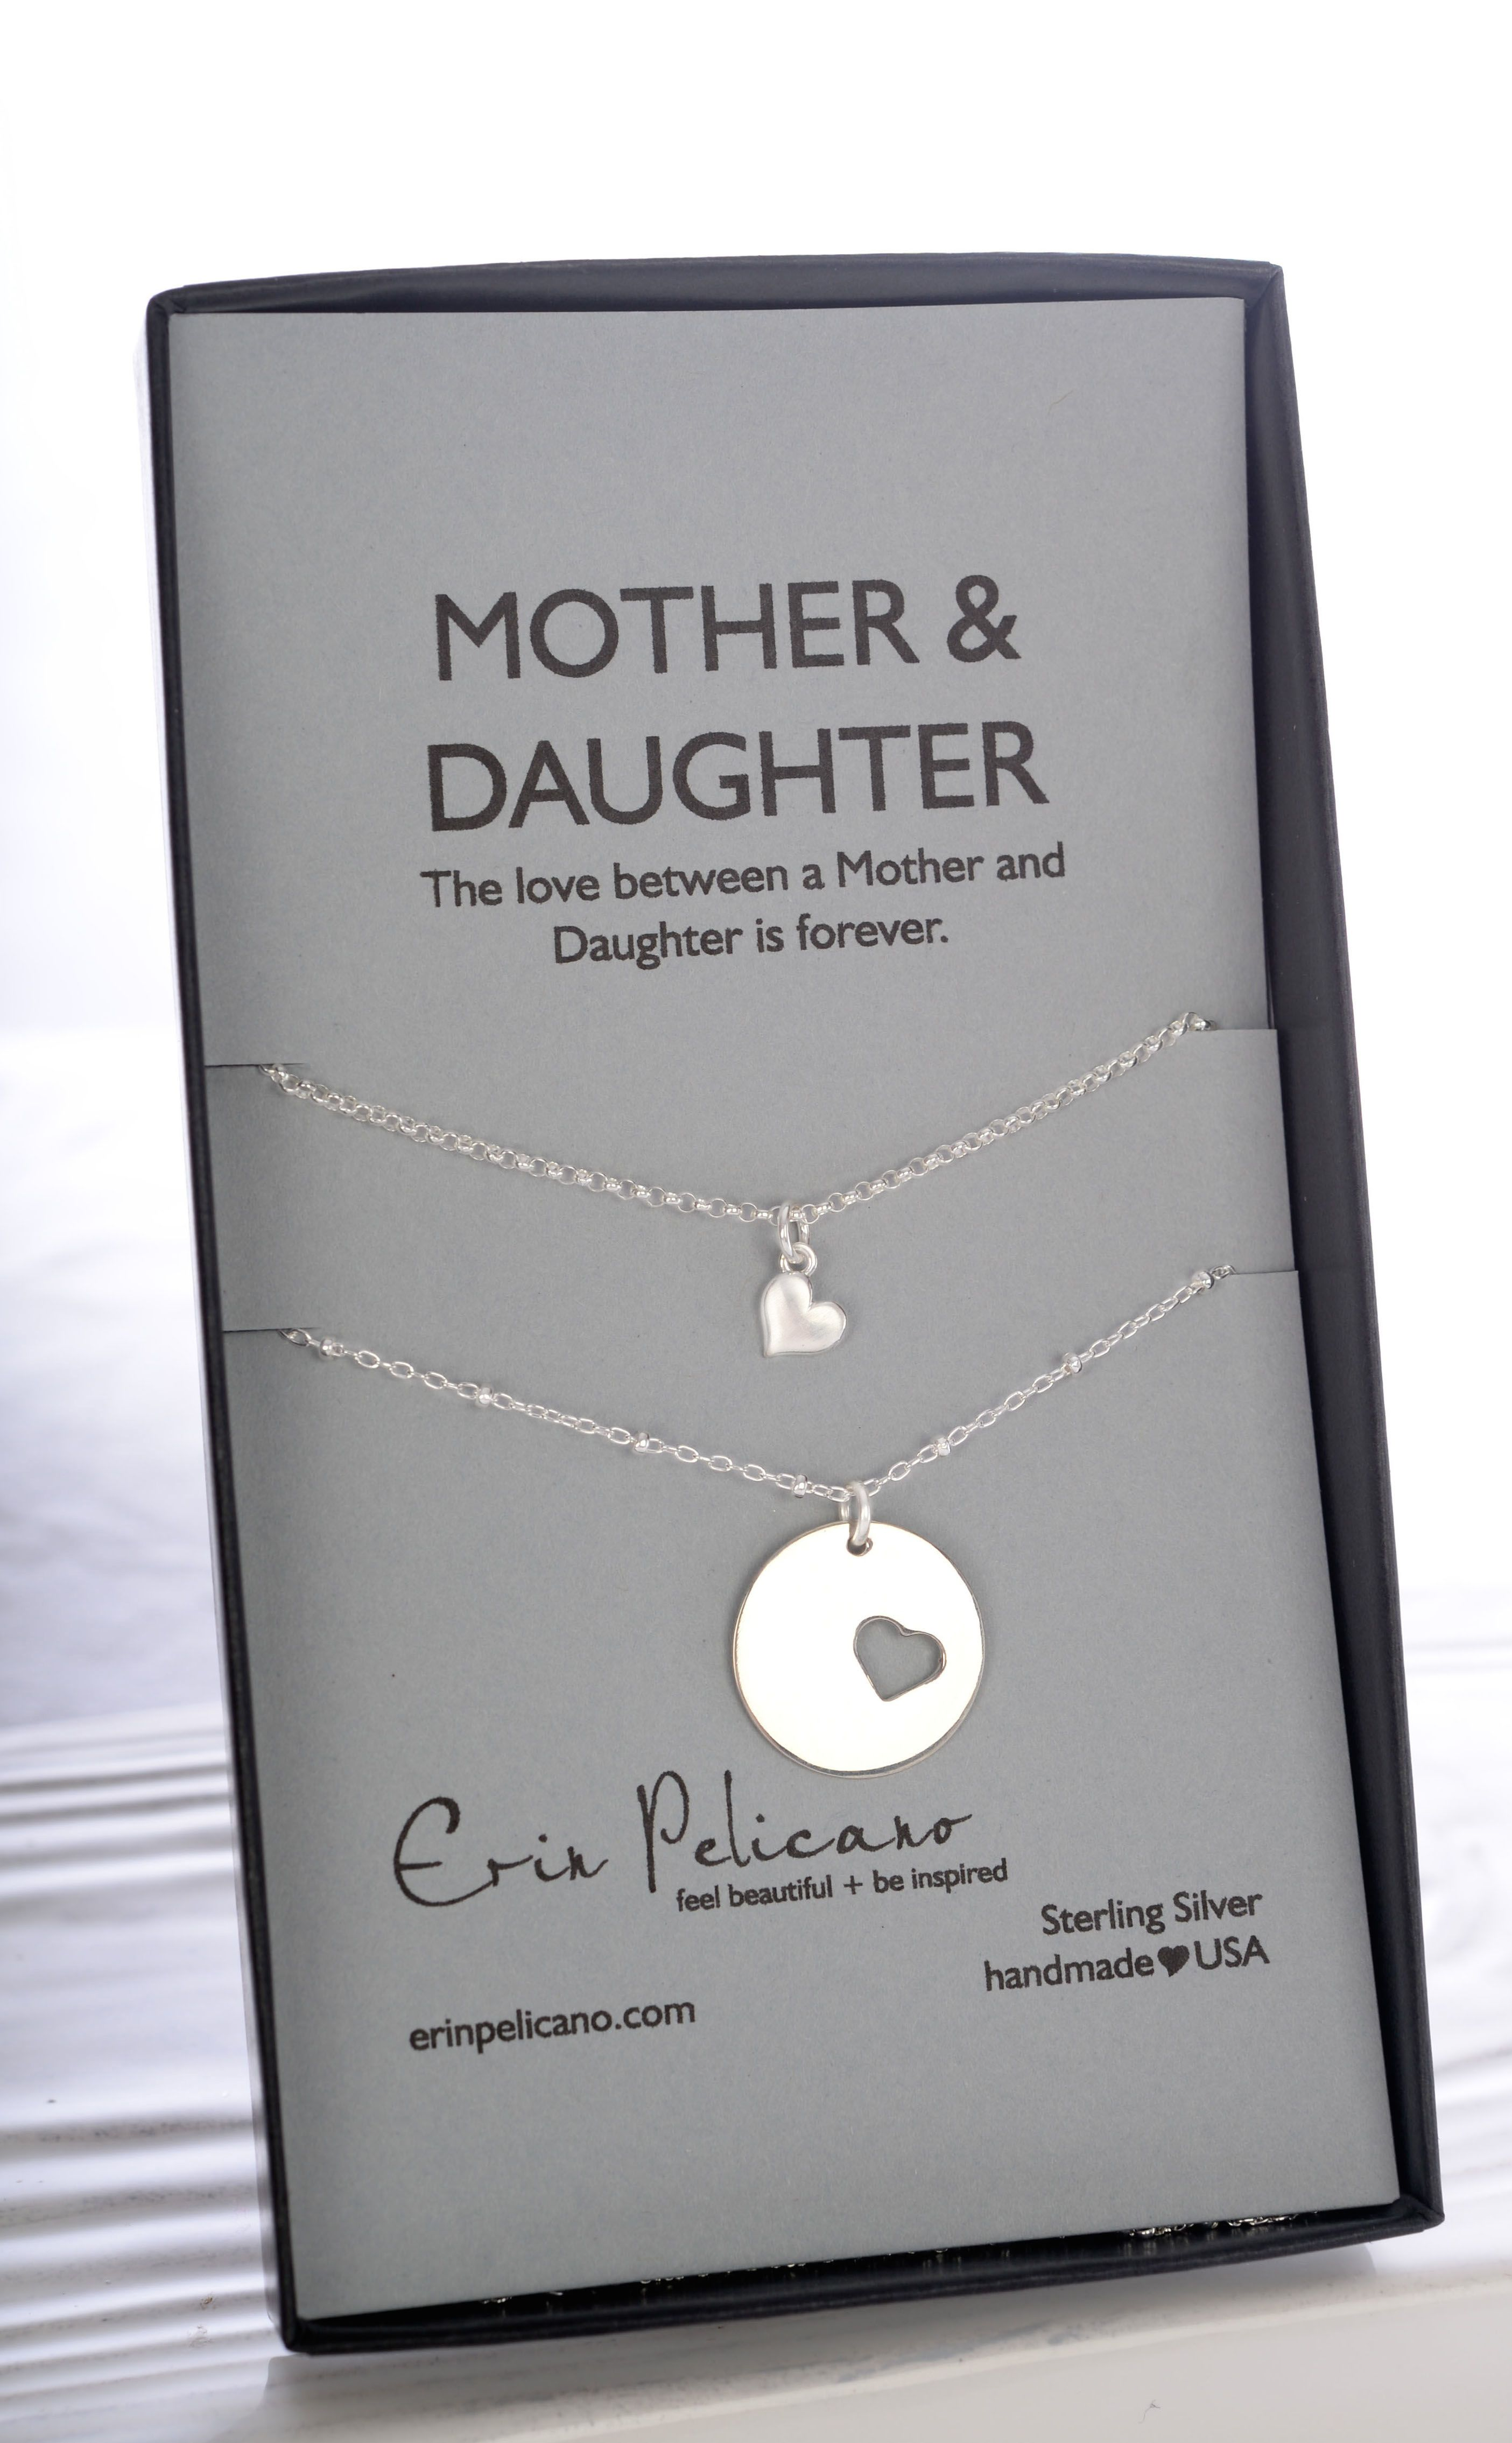 Mothers Day Gifts Mom Daughter Necklace Set A Clic Gift For Love Of Mother Crafted In Sterling Silver And Gold